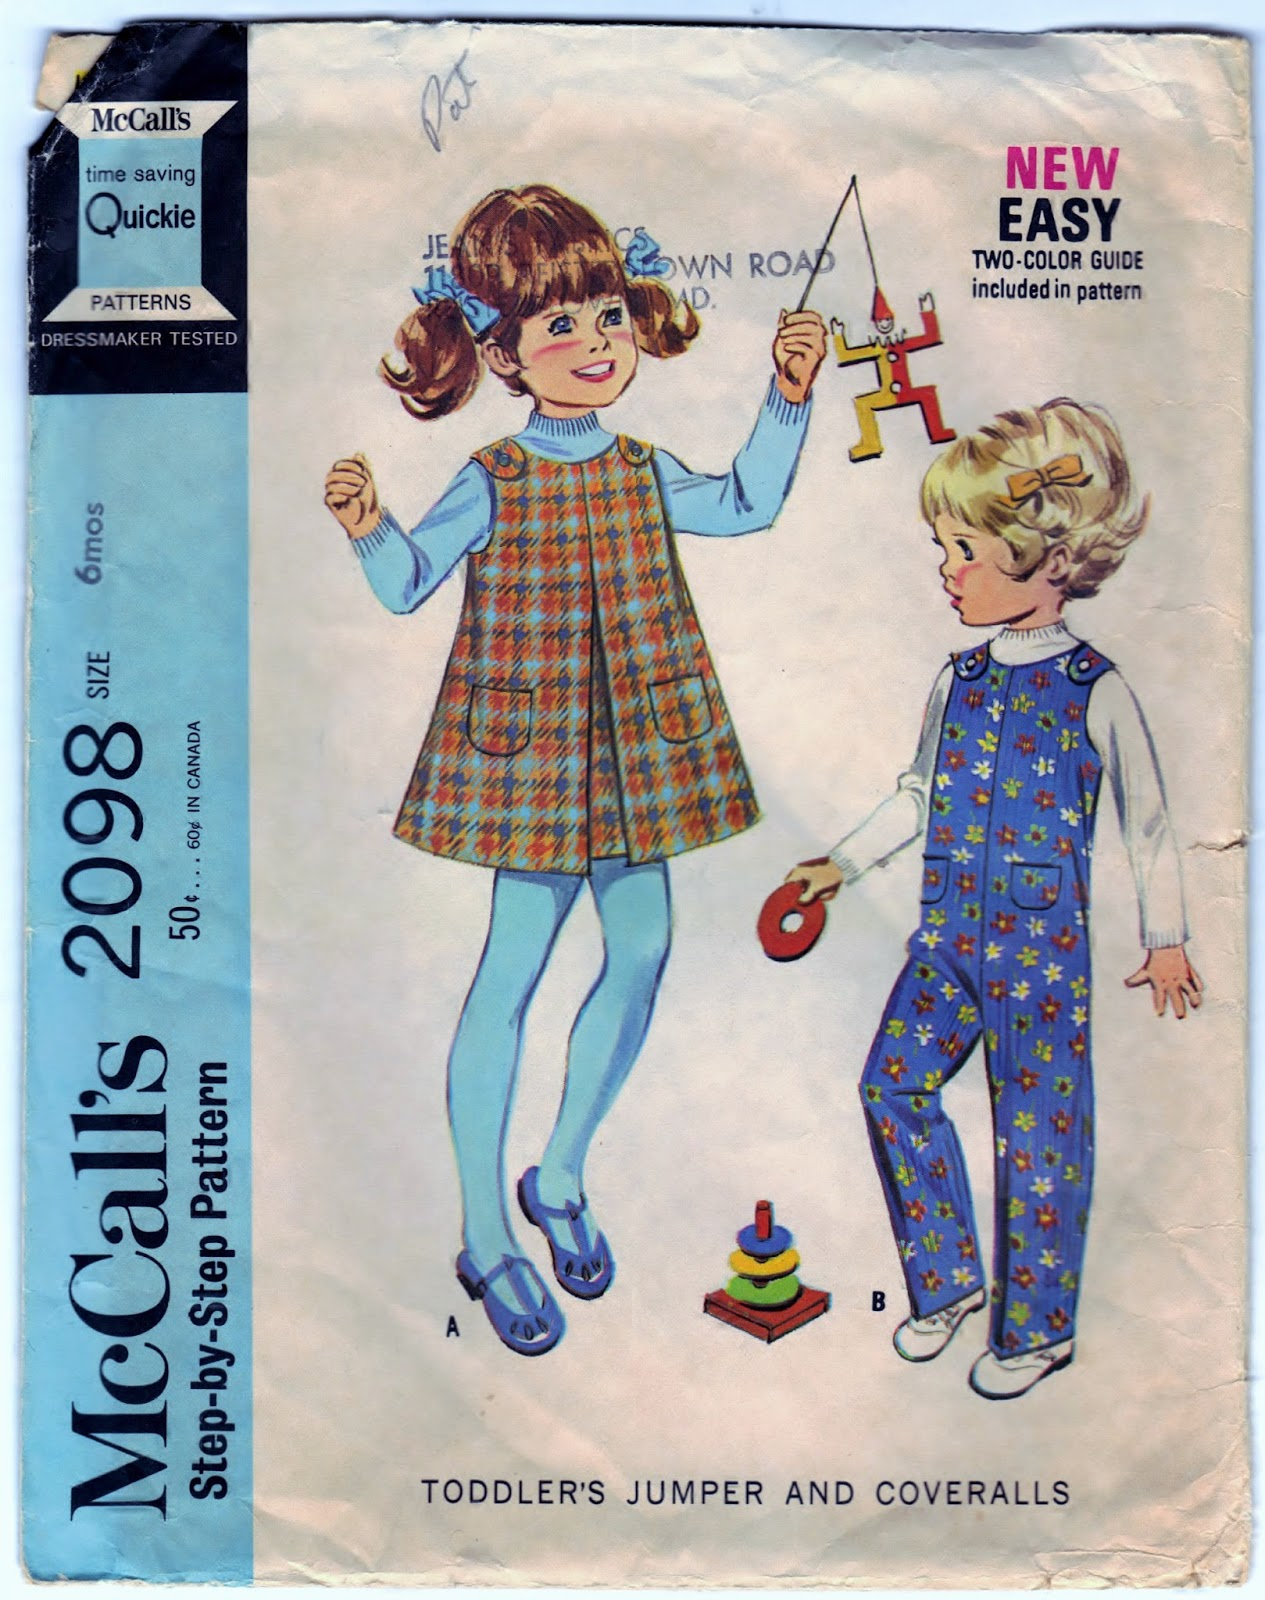 https://www.etsy.com/listing/209885936/mccalls-2098-pattern-diy-toddlers-jumper?ref=shop_home_active_1